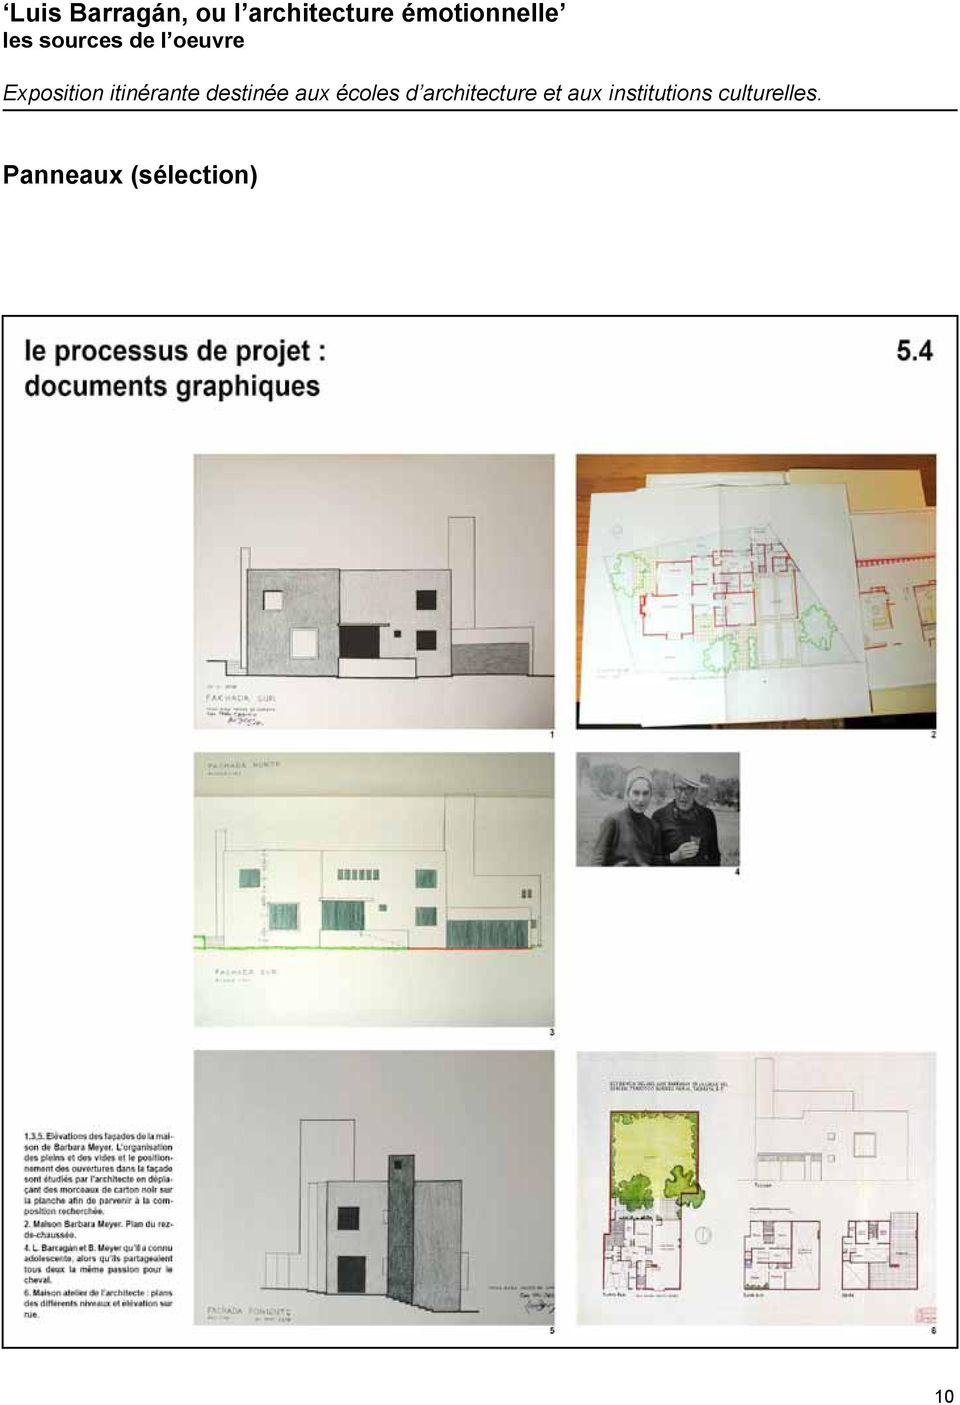 Luis barrag n ou l architecture motionnelle les sources for Architecture emotionnelle